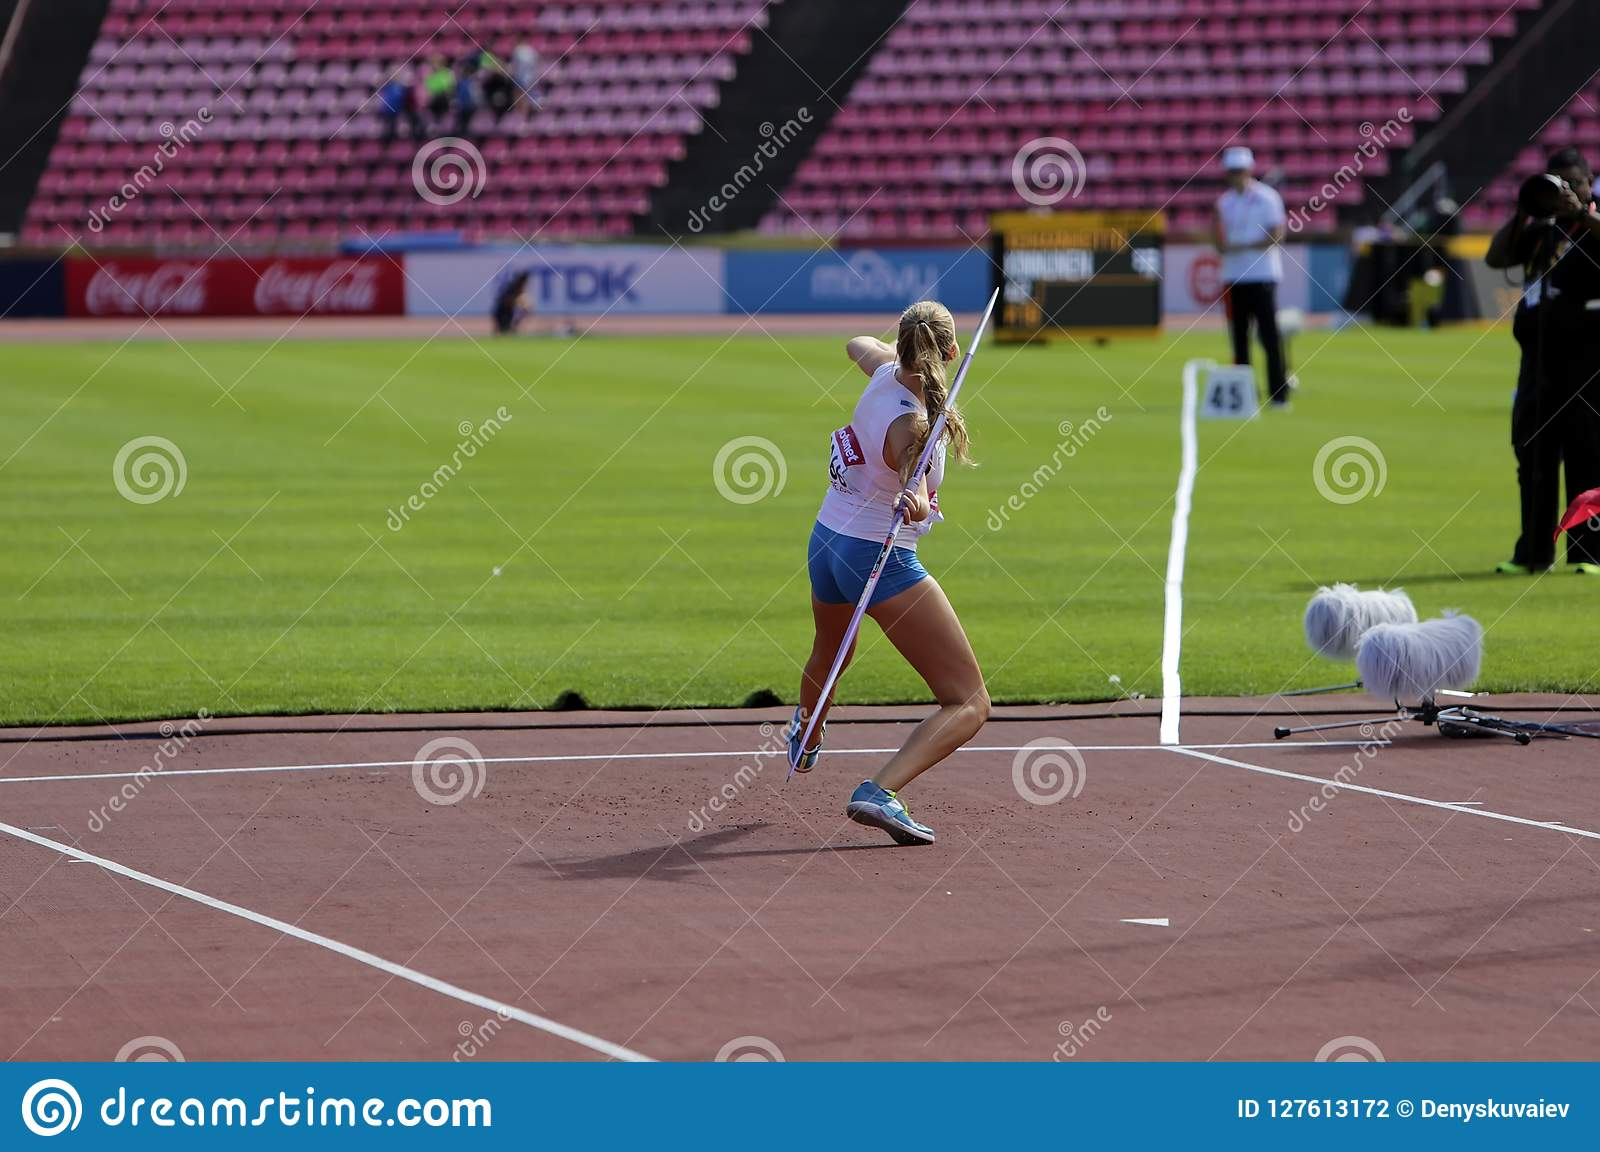 ELINA KINNUNEN from Finland on the javelin throw event in the IAAF World U20 Championship in Tampere, Finland 10th July, 2018.